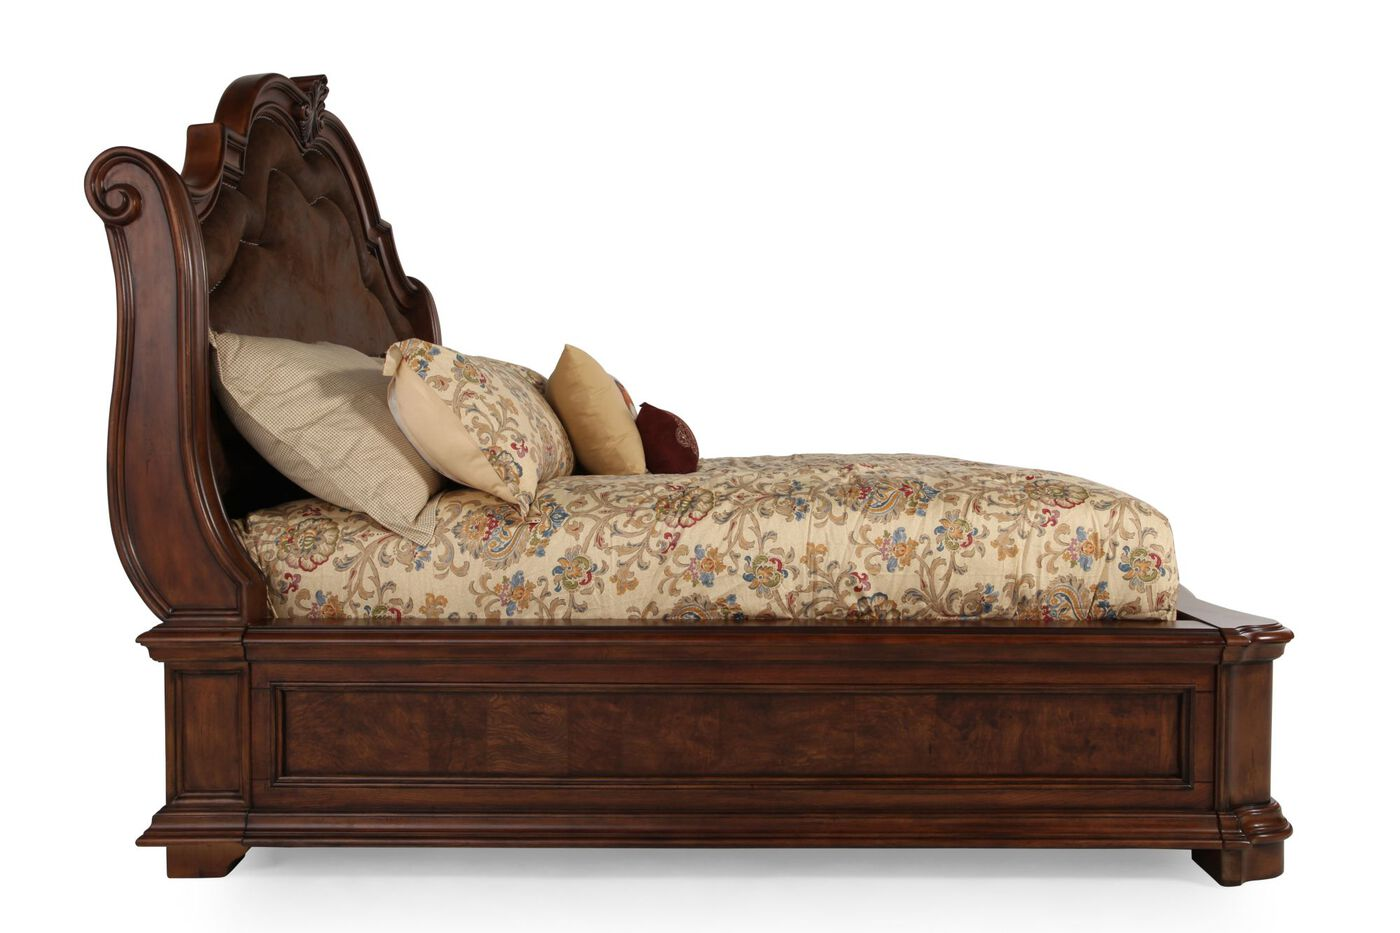 Image Result For Furniture Store San Mateo